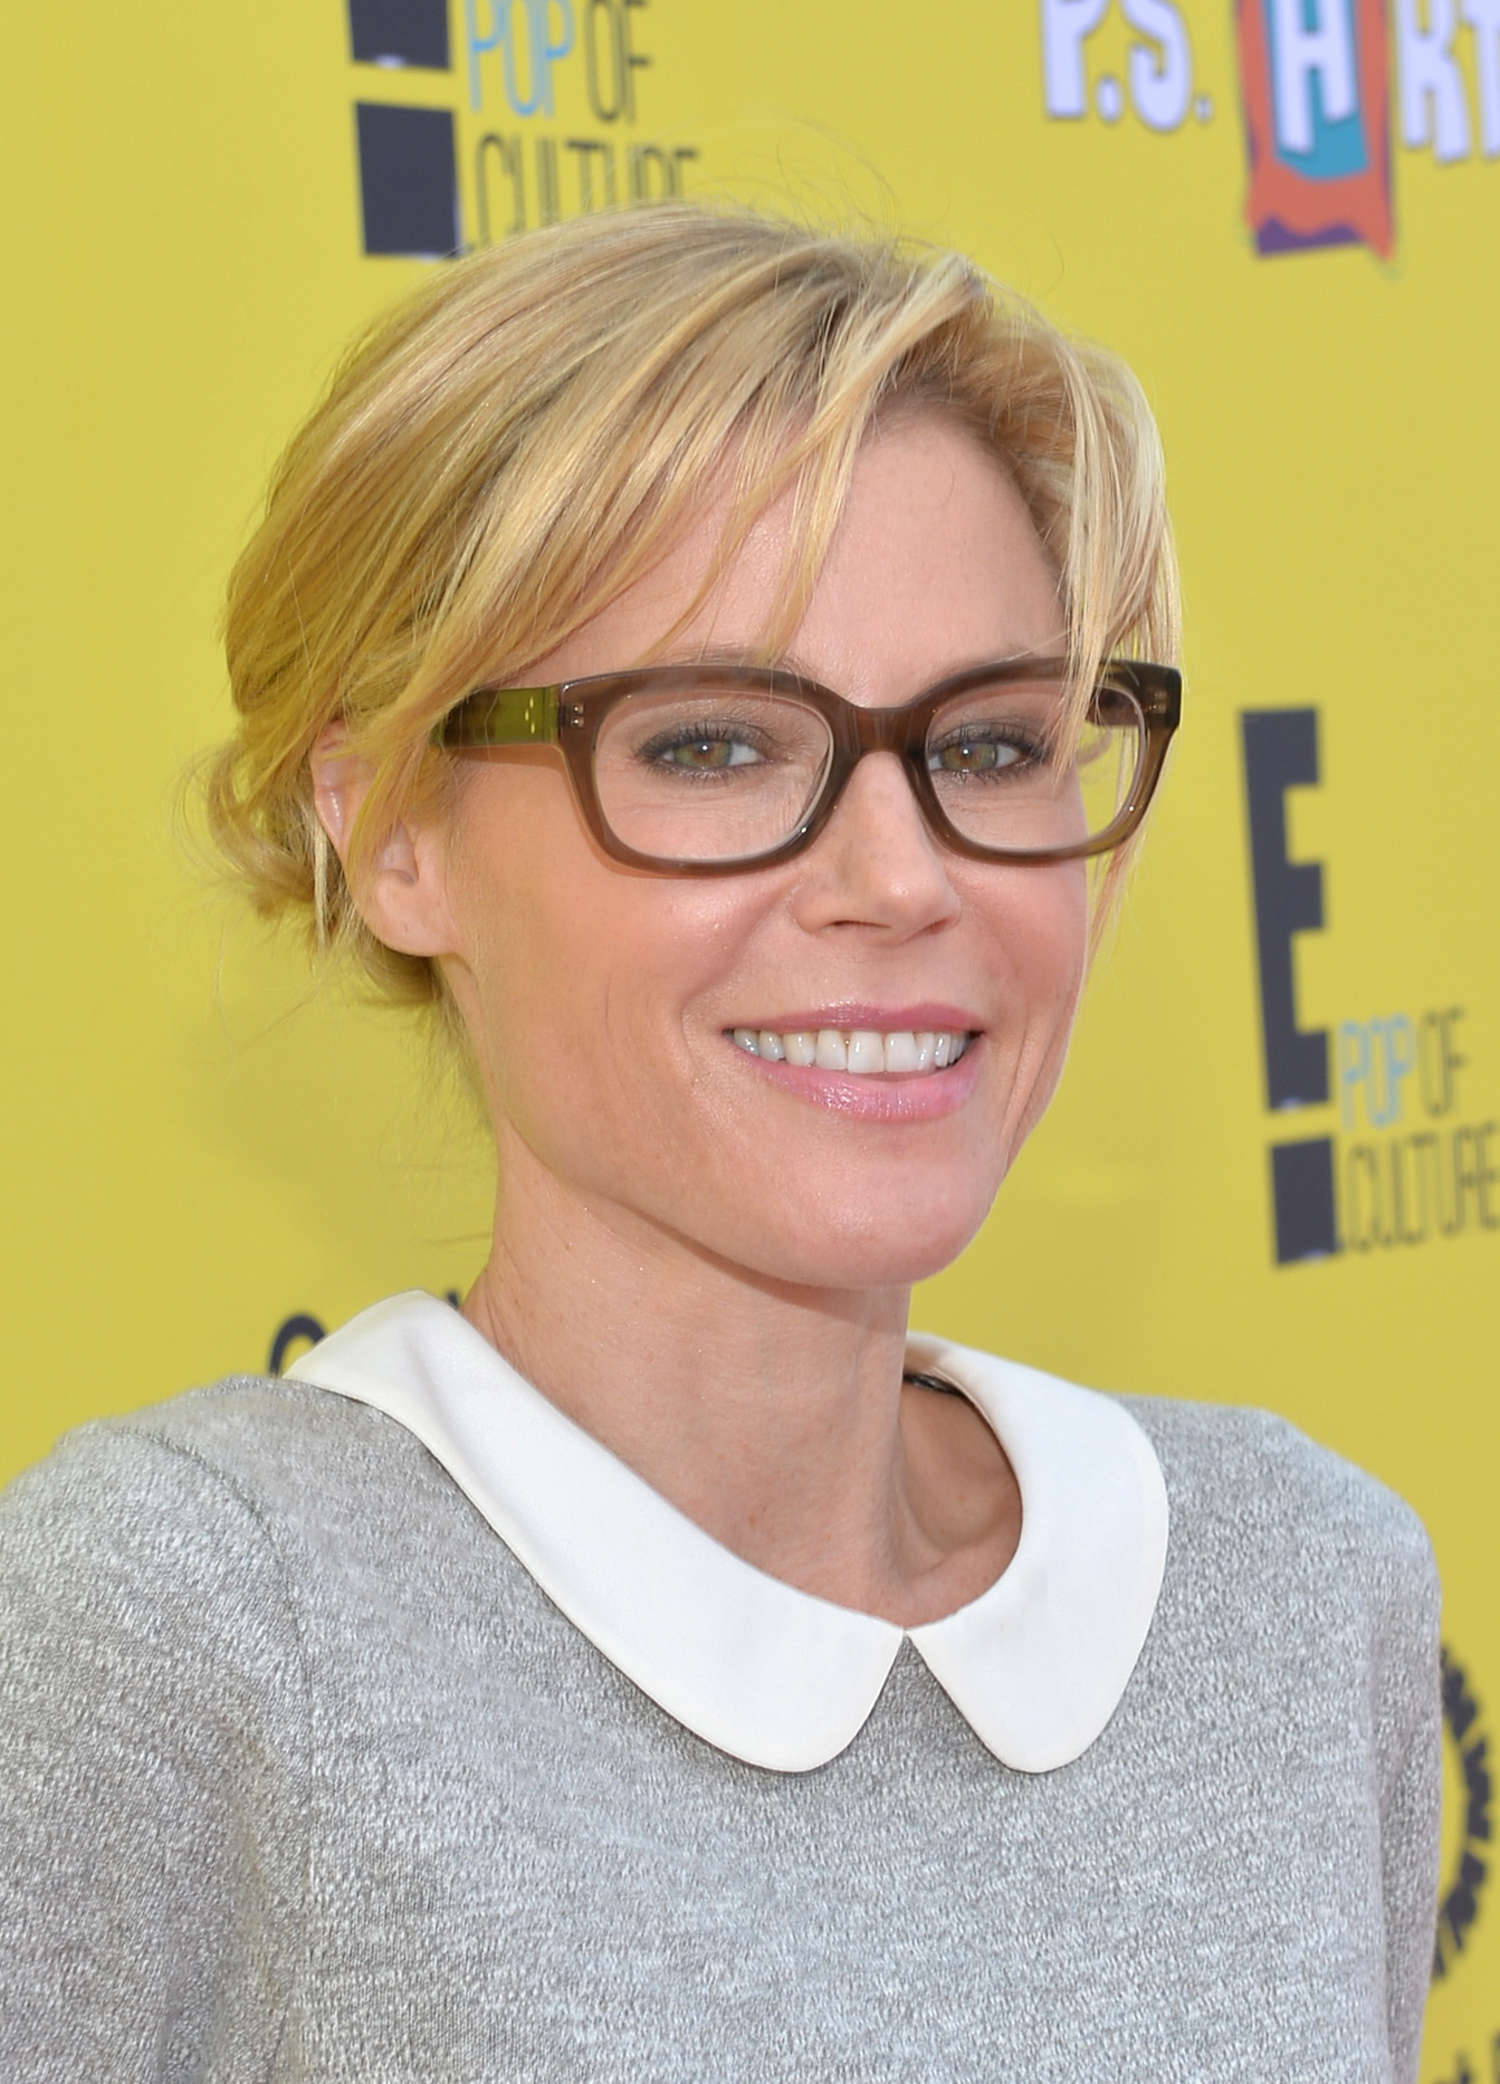 hulie bowen in glasses